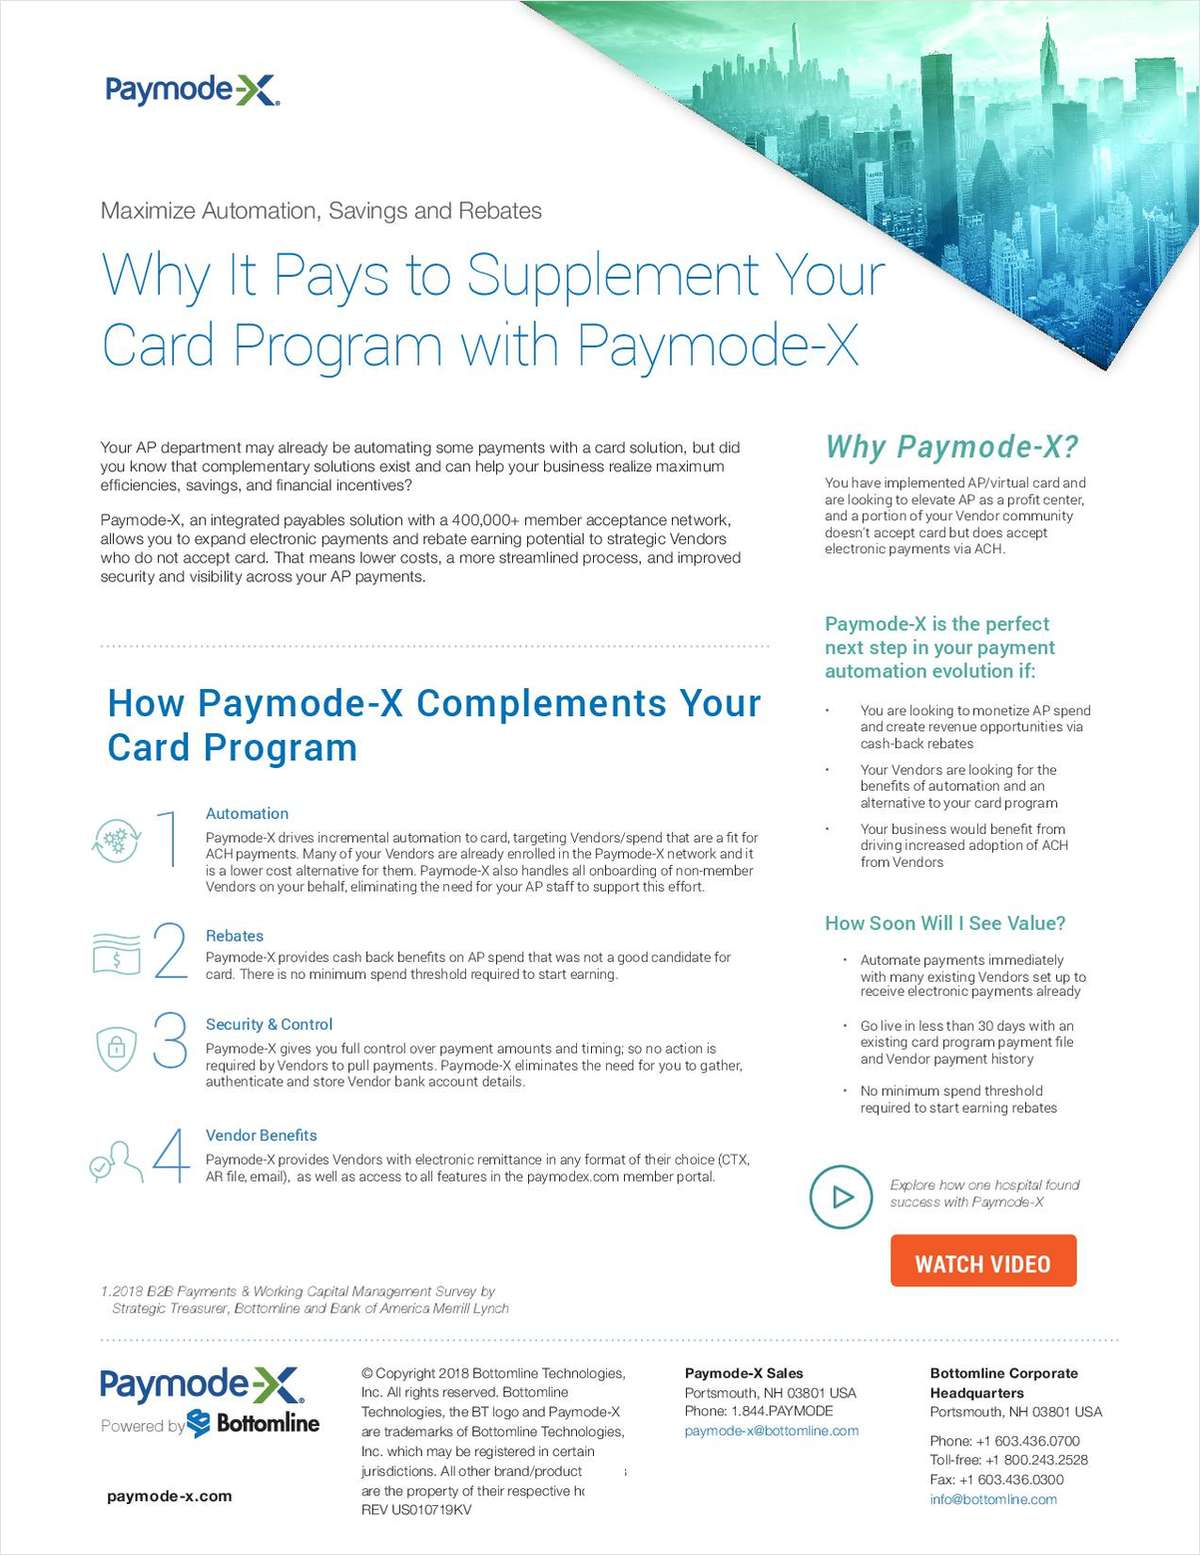 Why It Pays to Supplement Your Card Program with Paymode-X